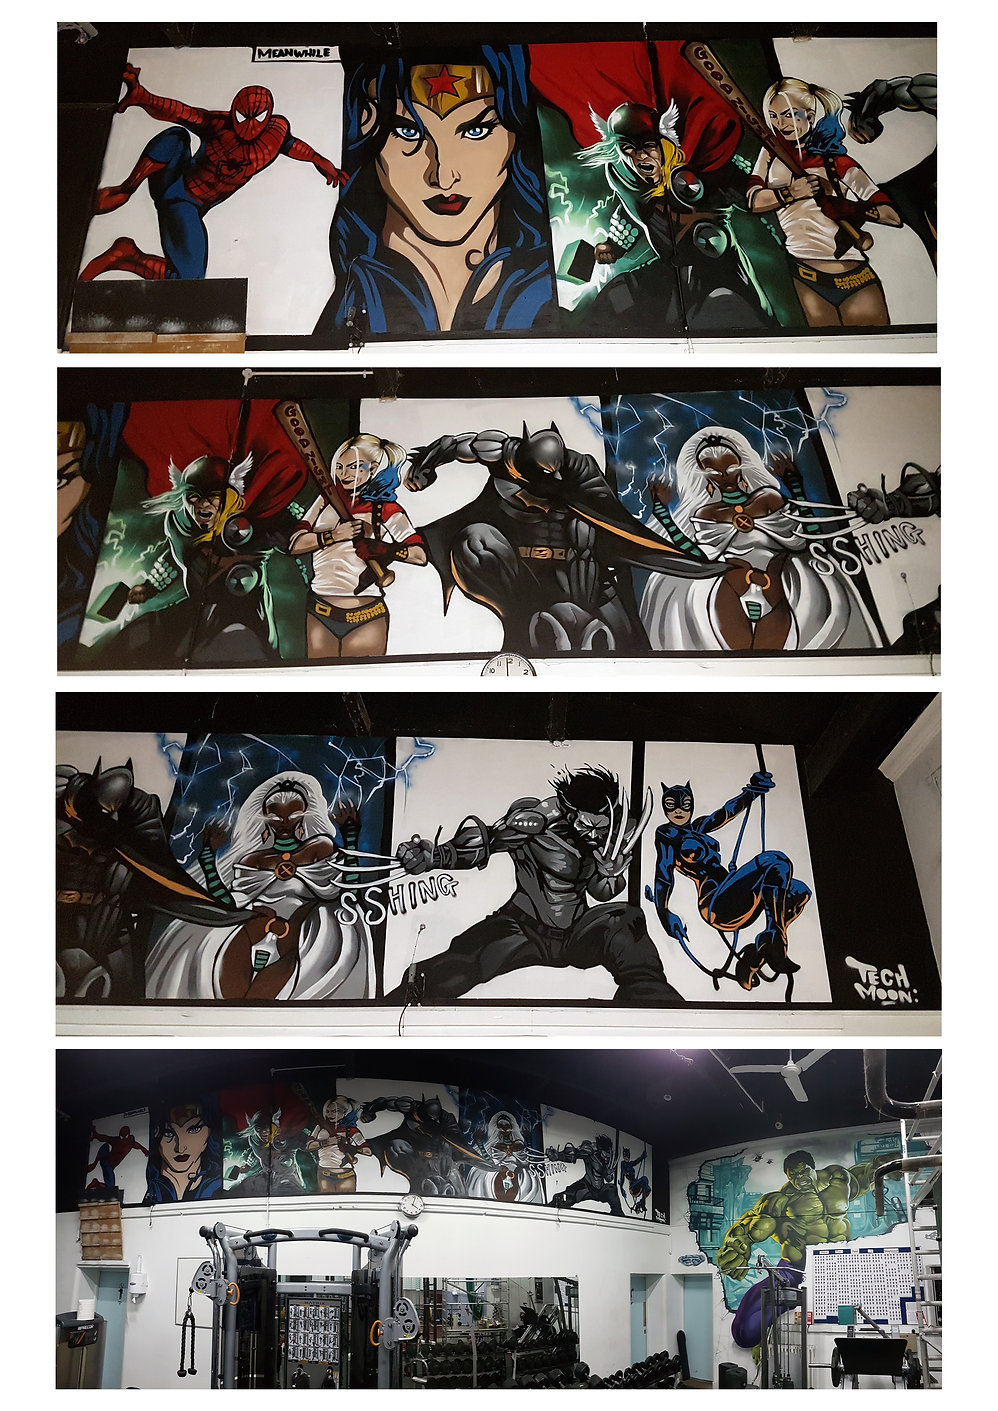 Street art, graffiti, mural, krishna malla, tech moon, Marvel, dc comics, batman, wolverine, storm, spiderman, superhero,